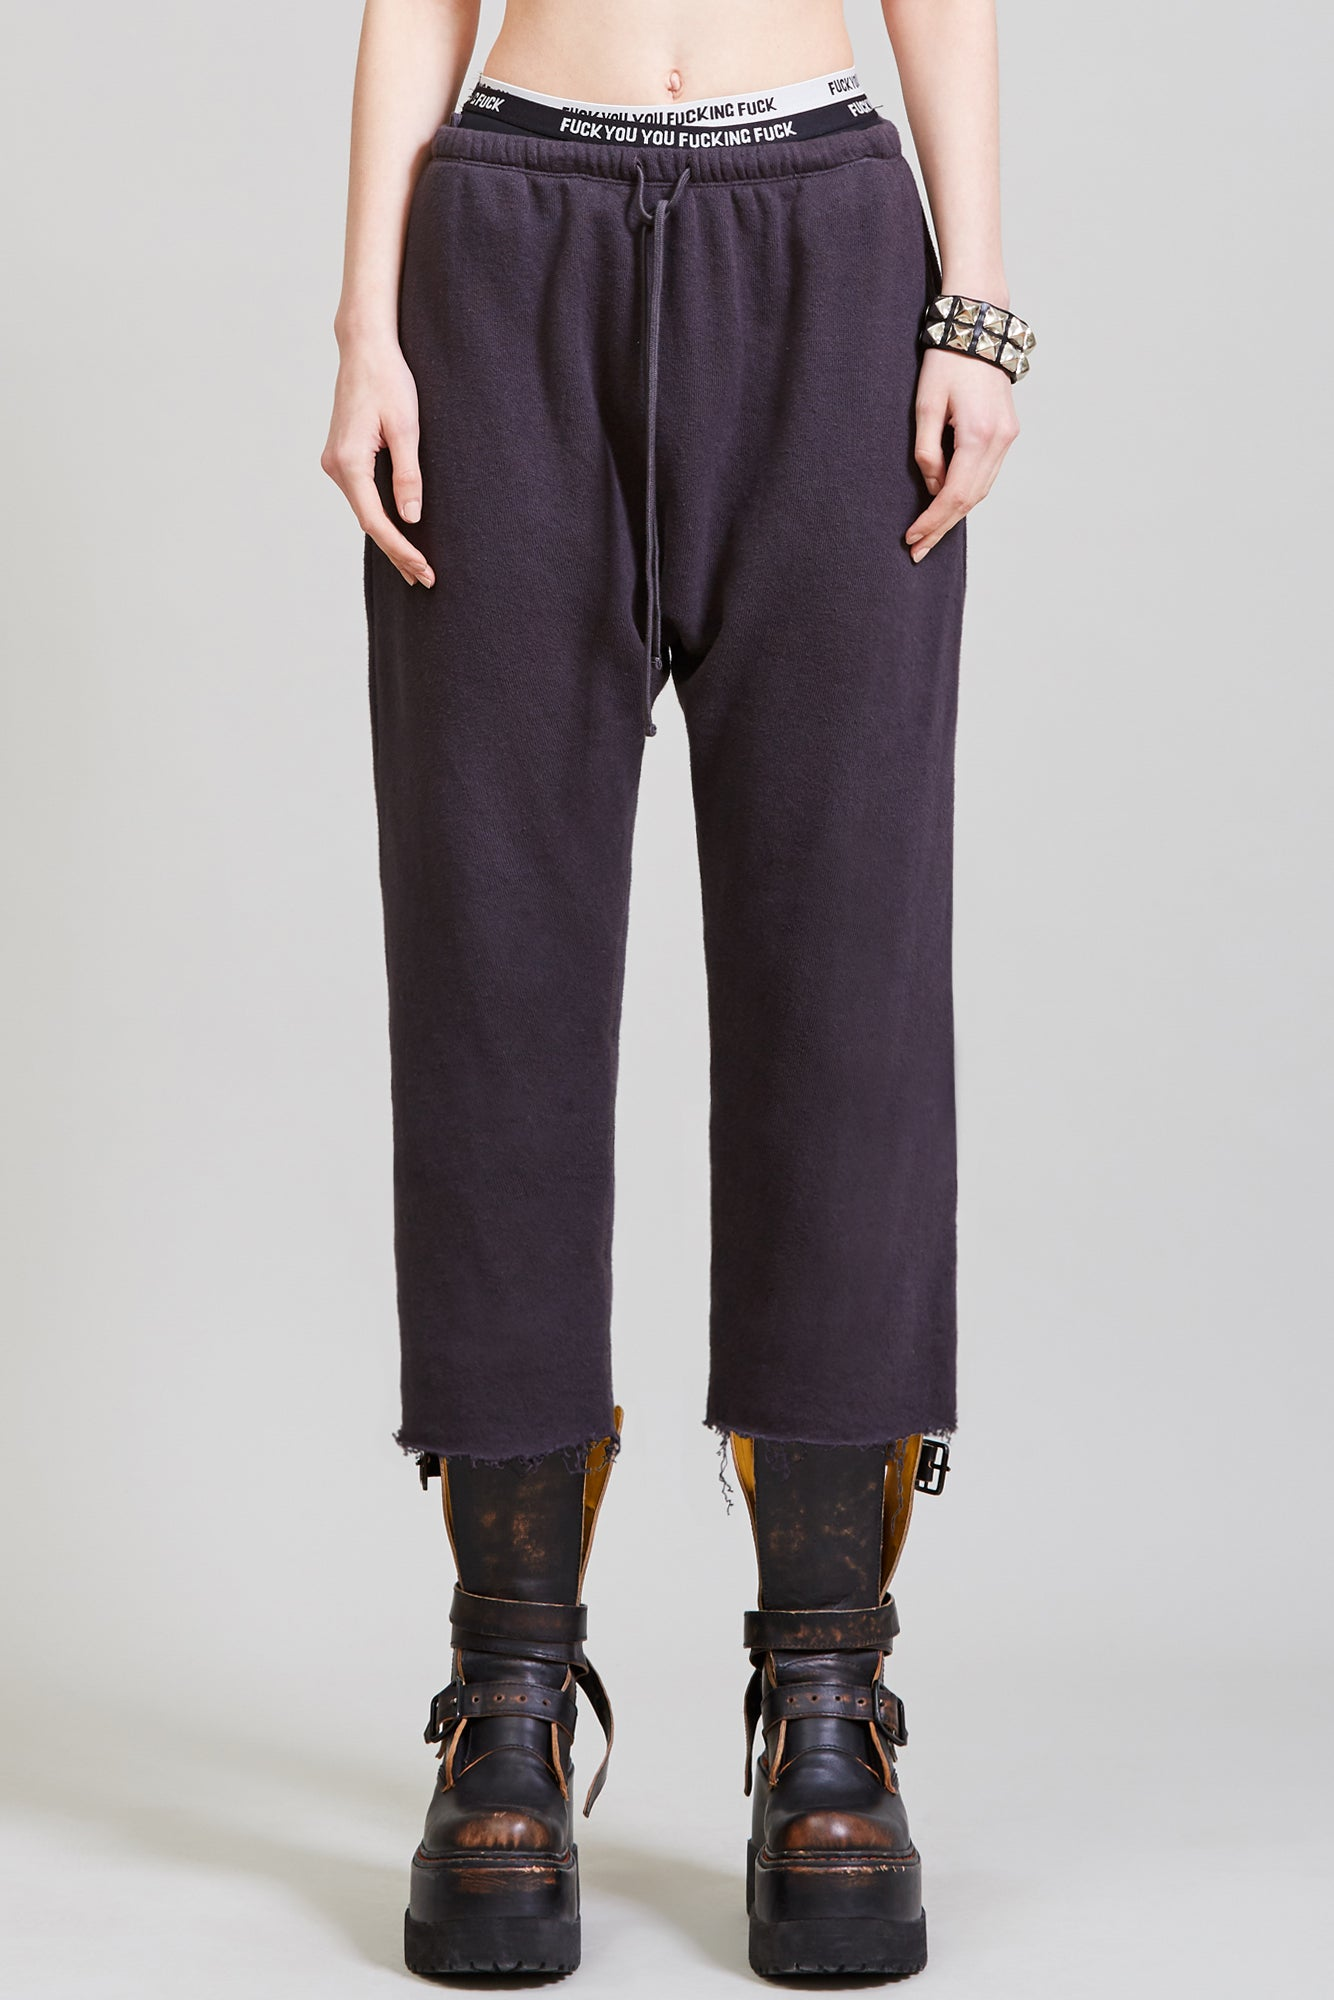 FIELD SWEATPANT - VINTAGE BLACK